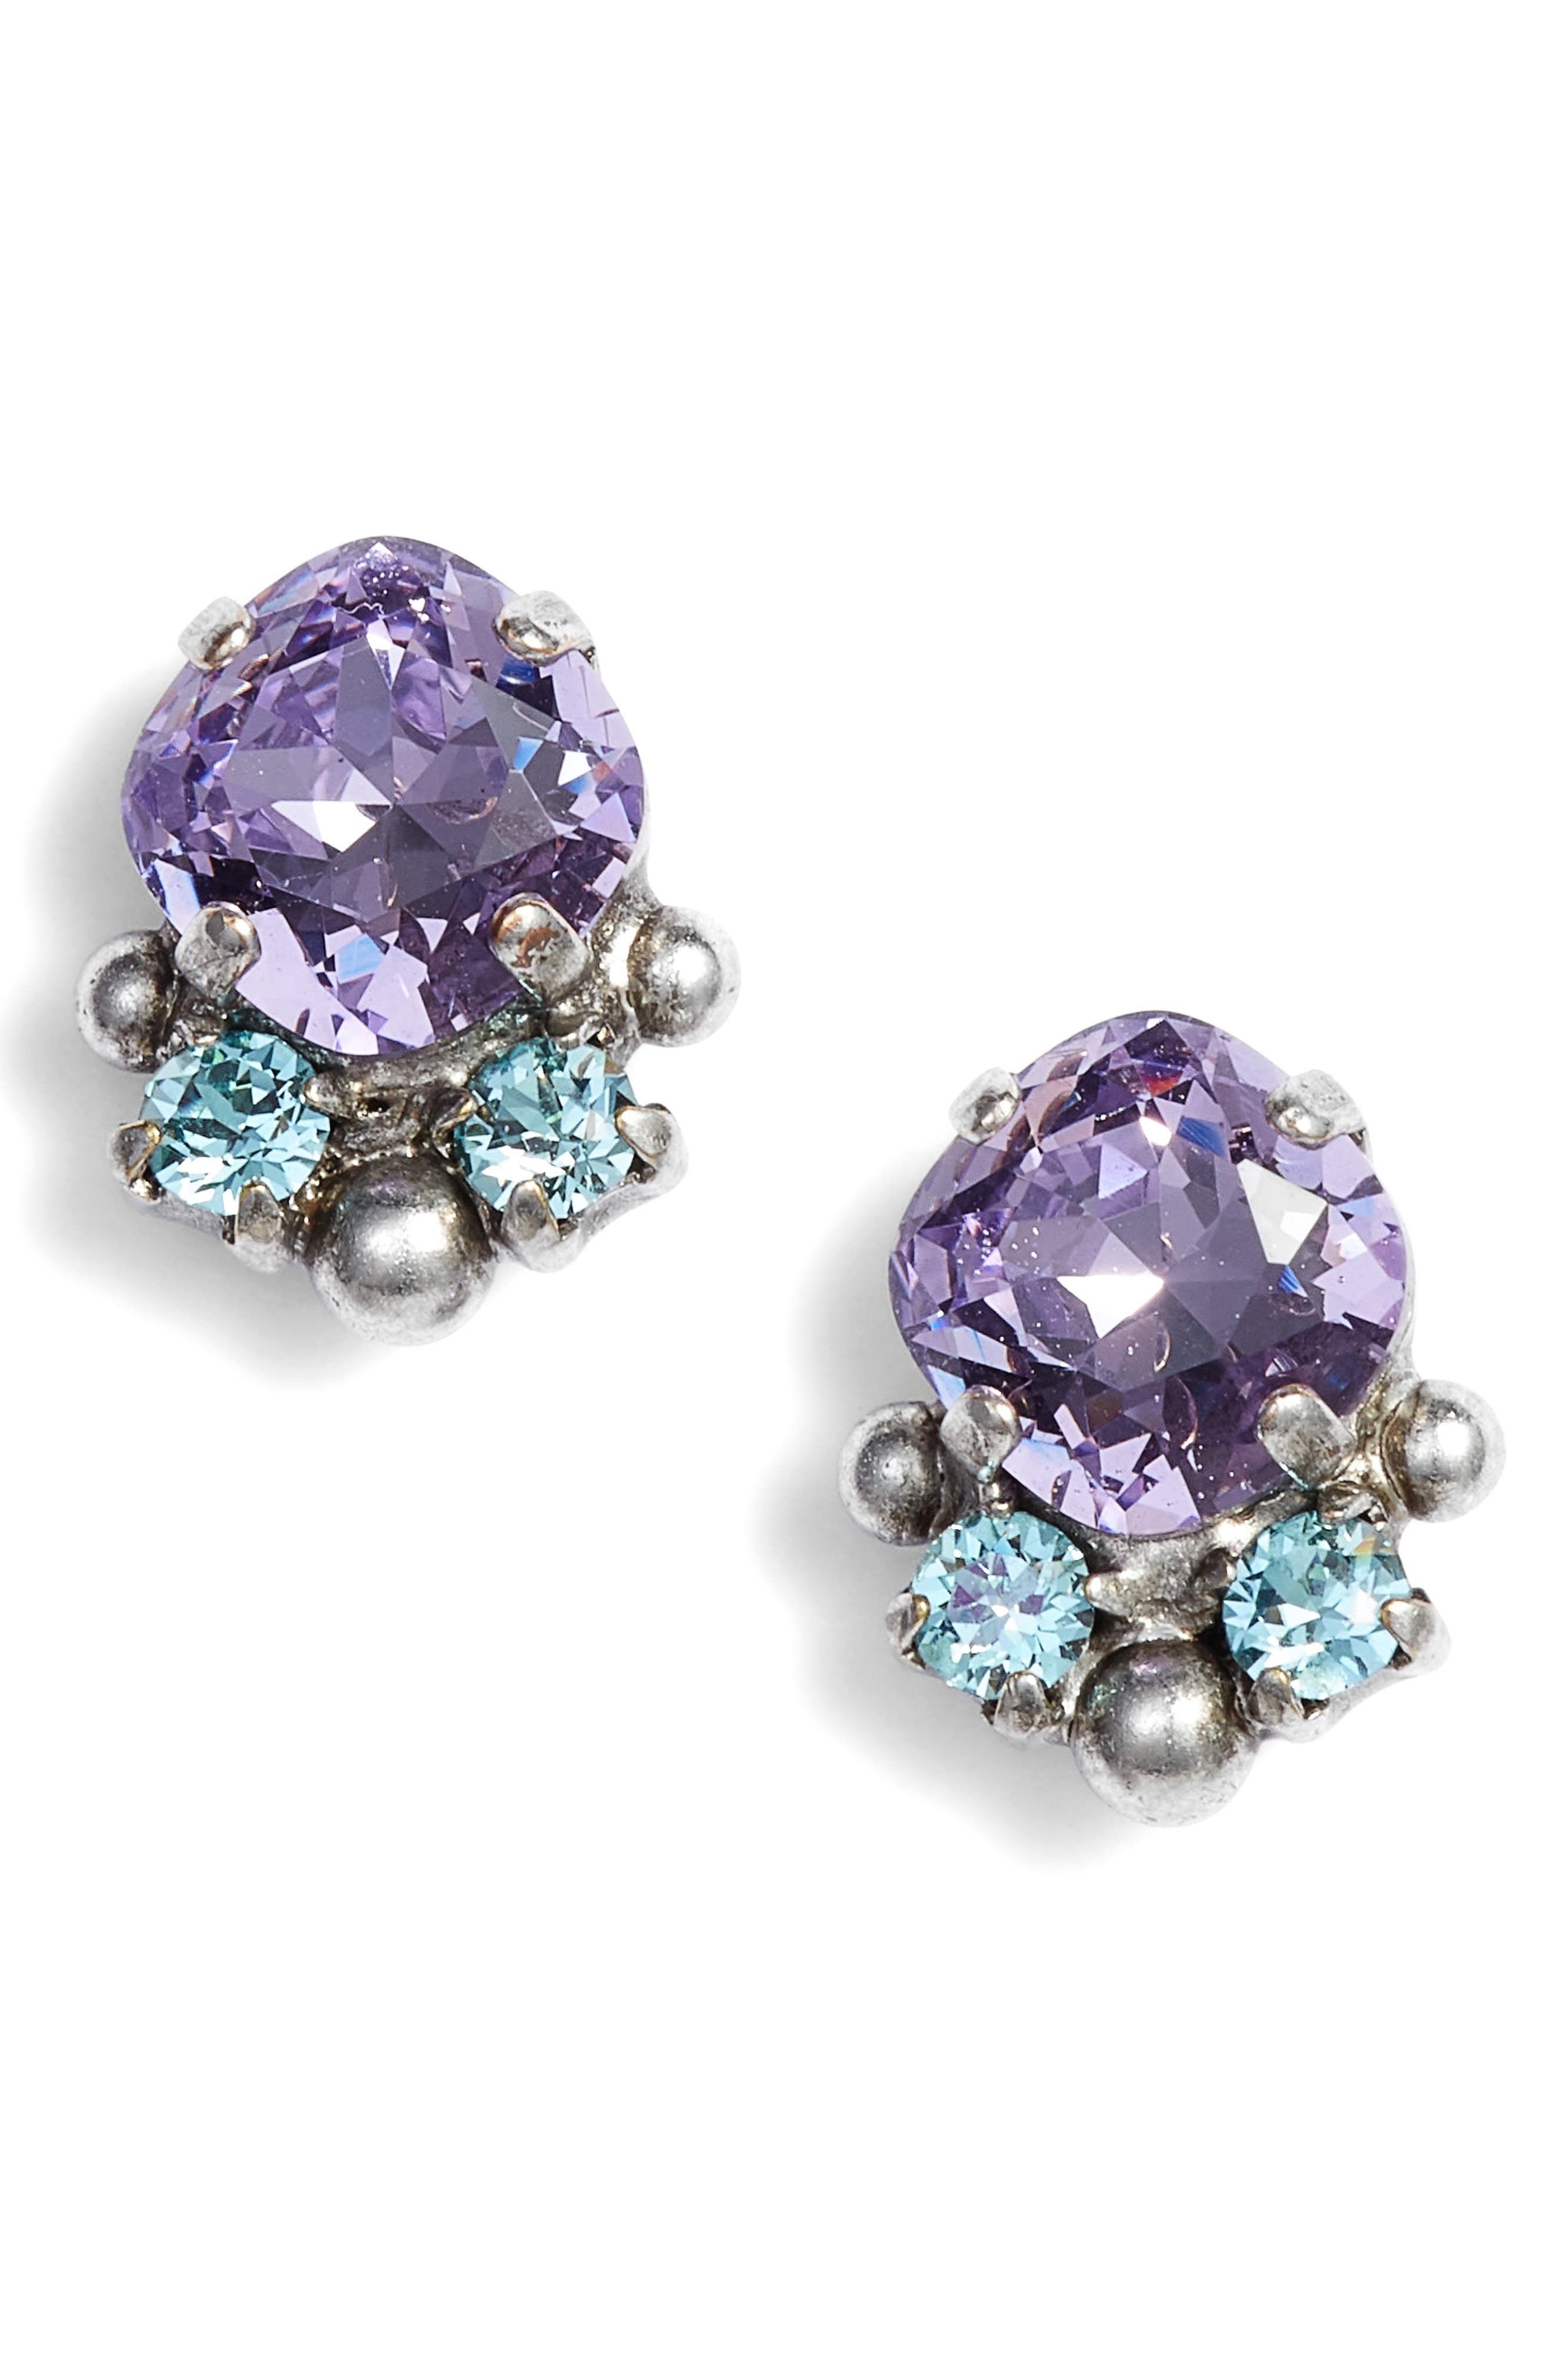 Cushion Cut Crystal Earrings,                             Main thumbnail 1, color,                             PURPLE